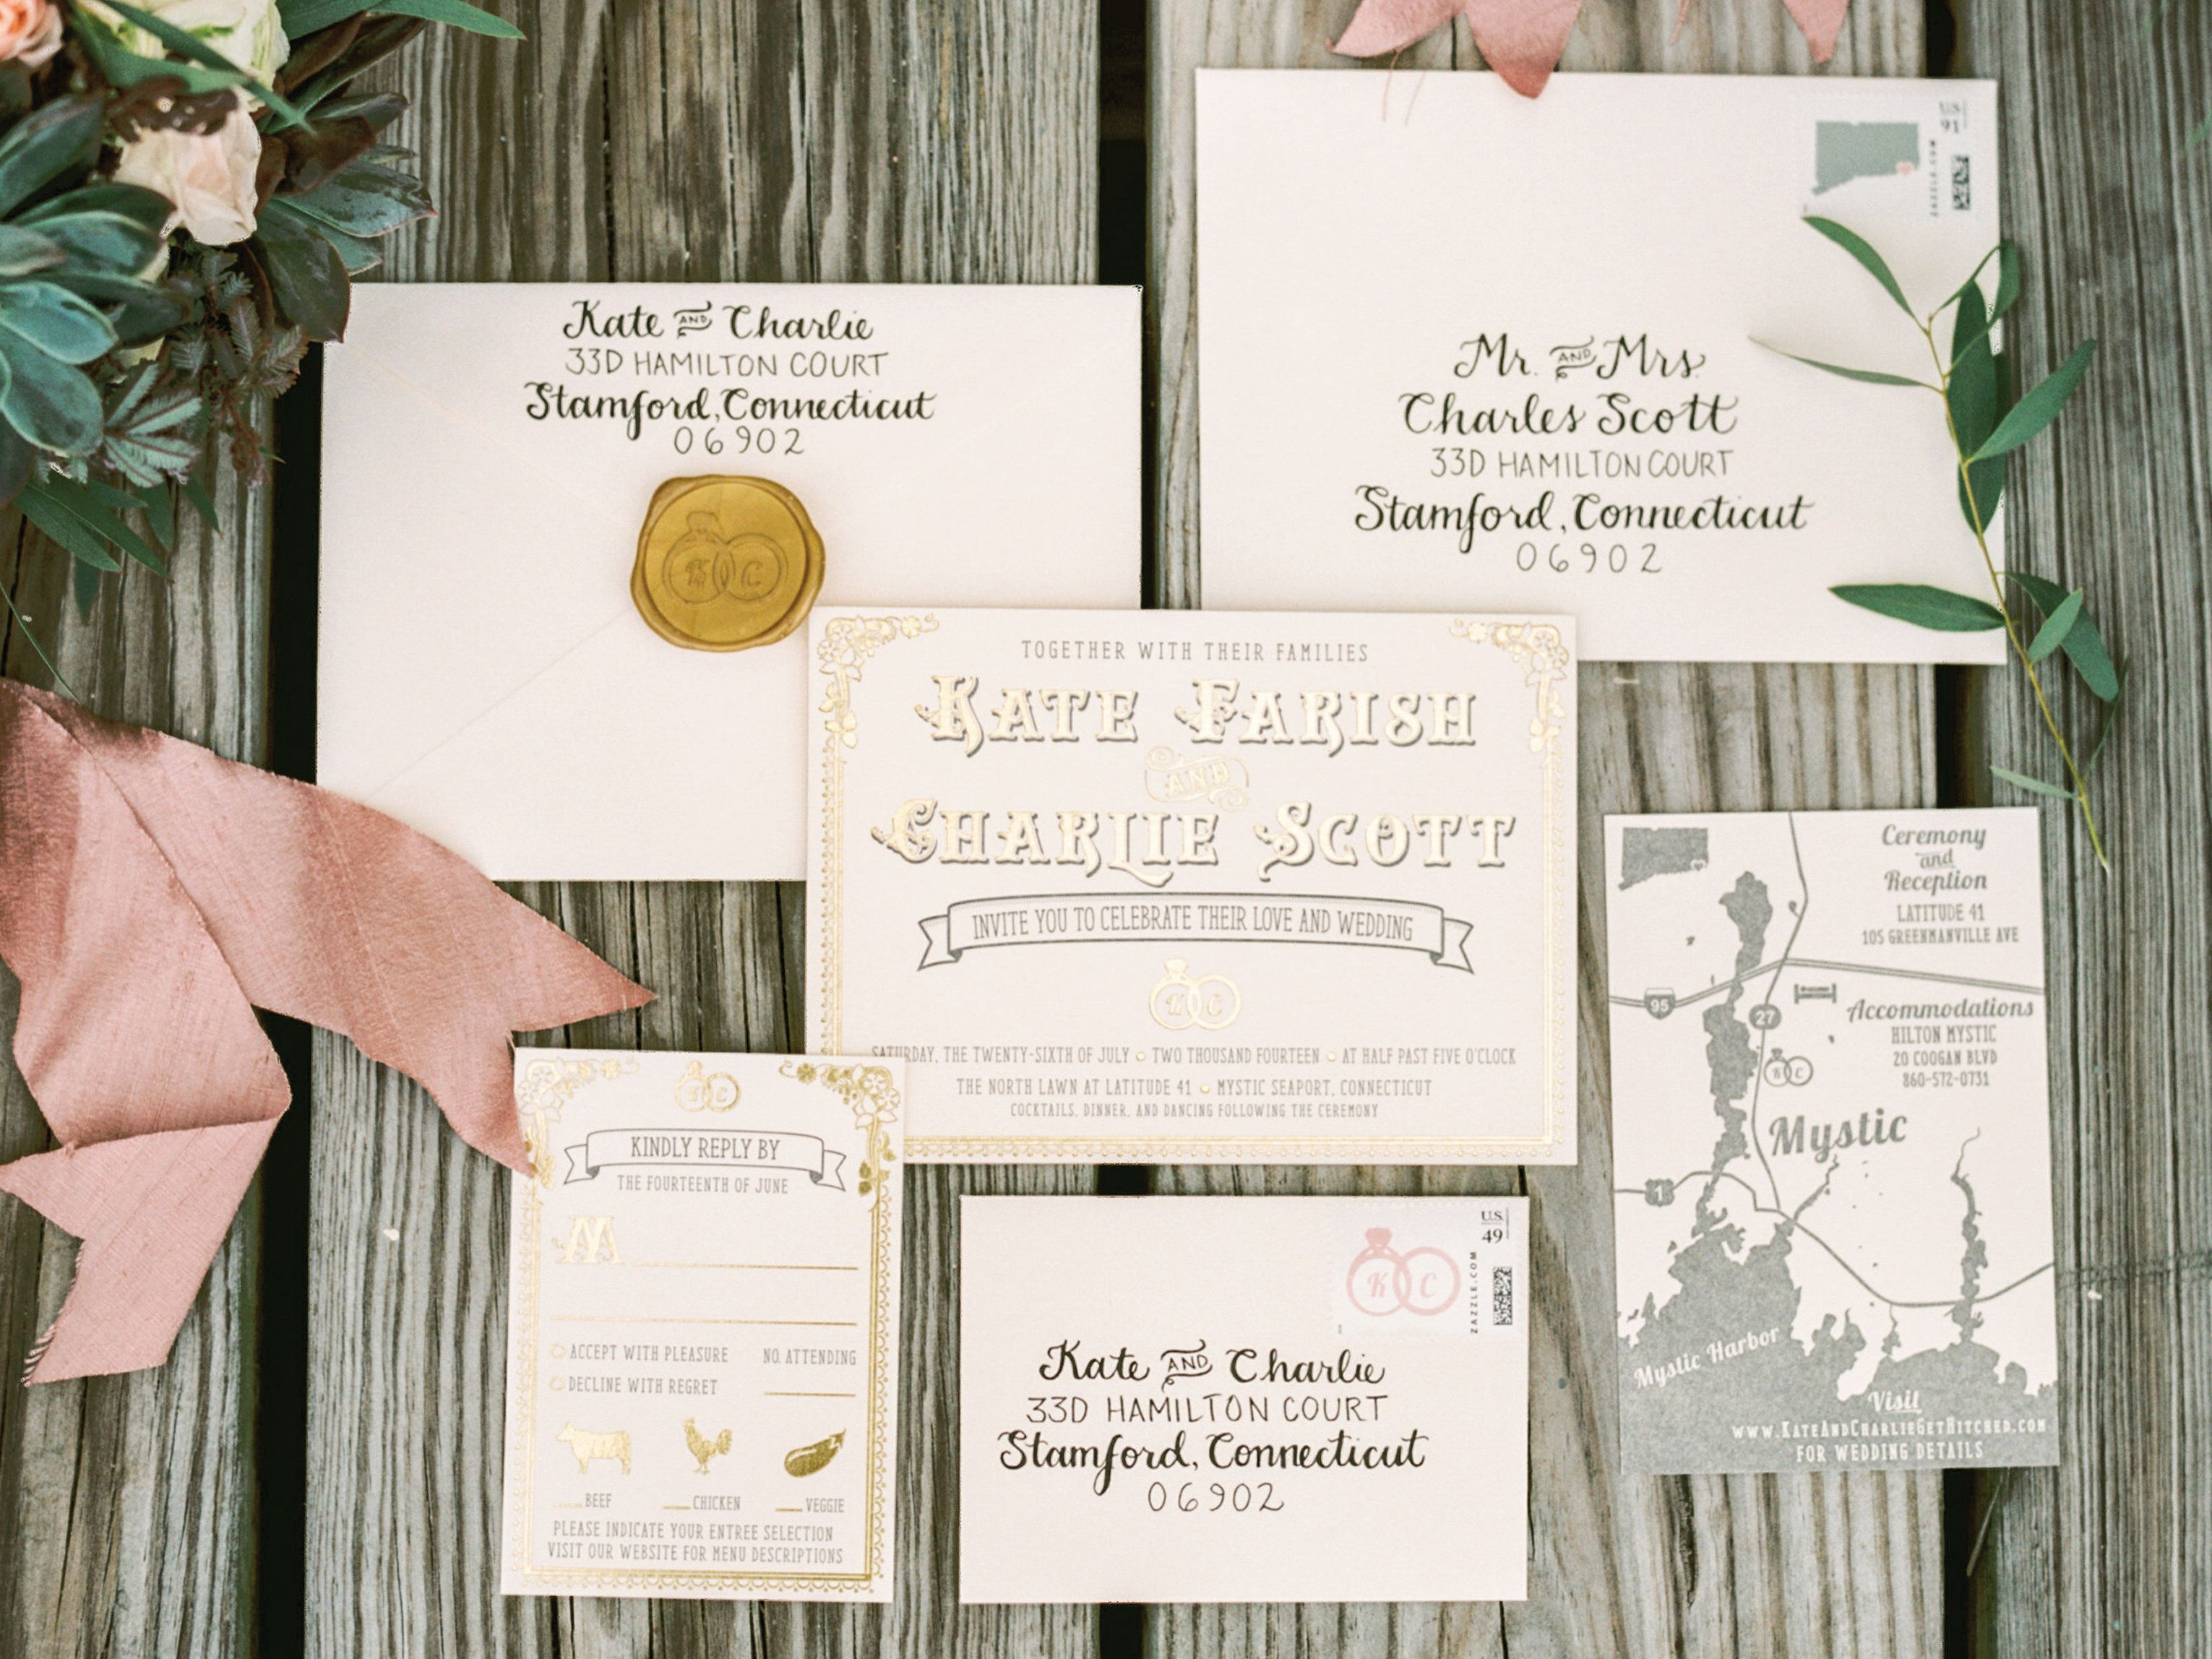 Wedding Invitation Verses Everything You Need To Know: Wording For Casual Wedding Invitations When The Couple Is